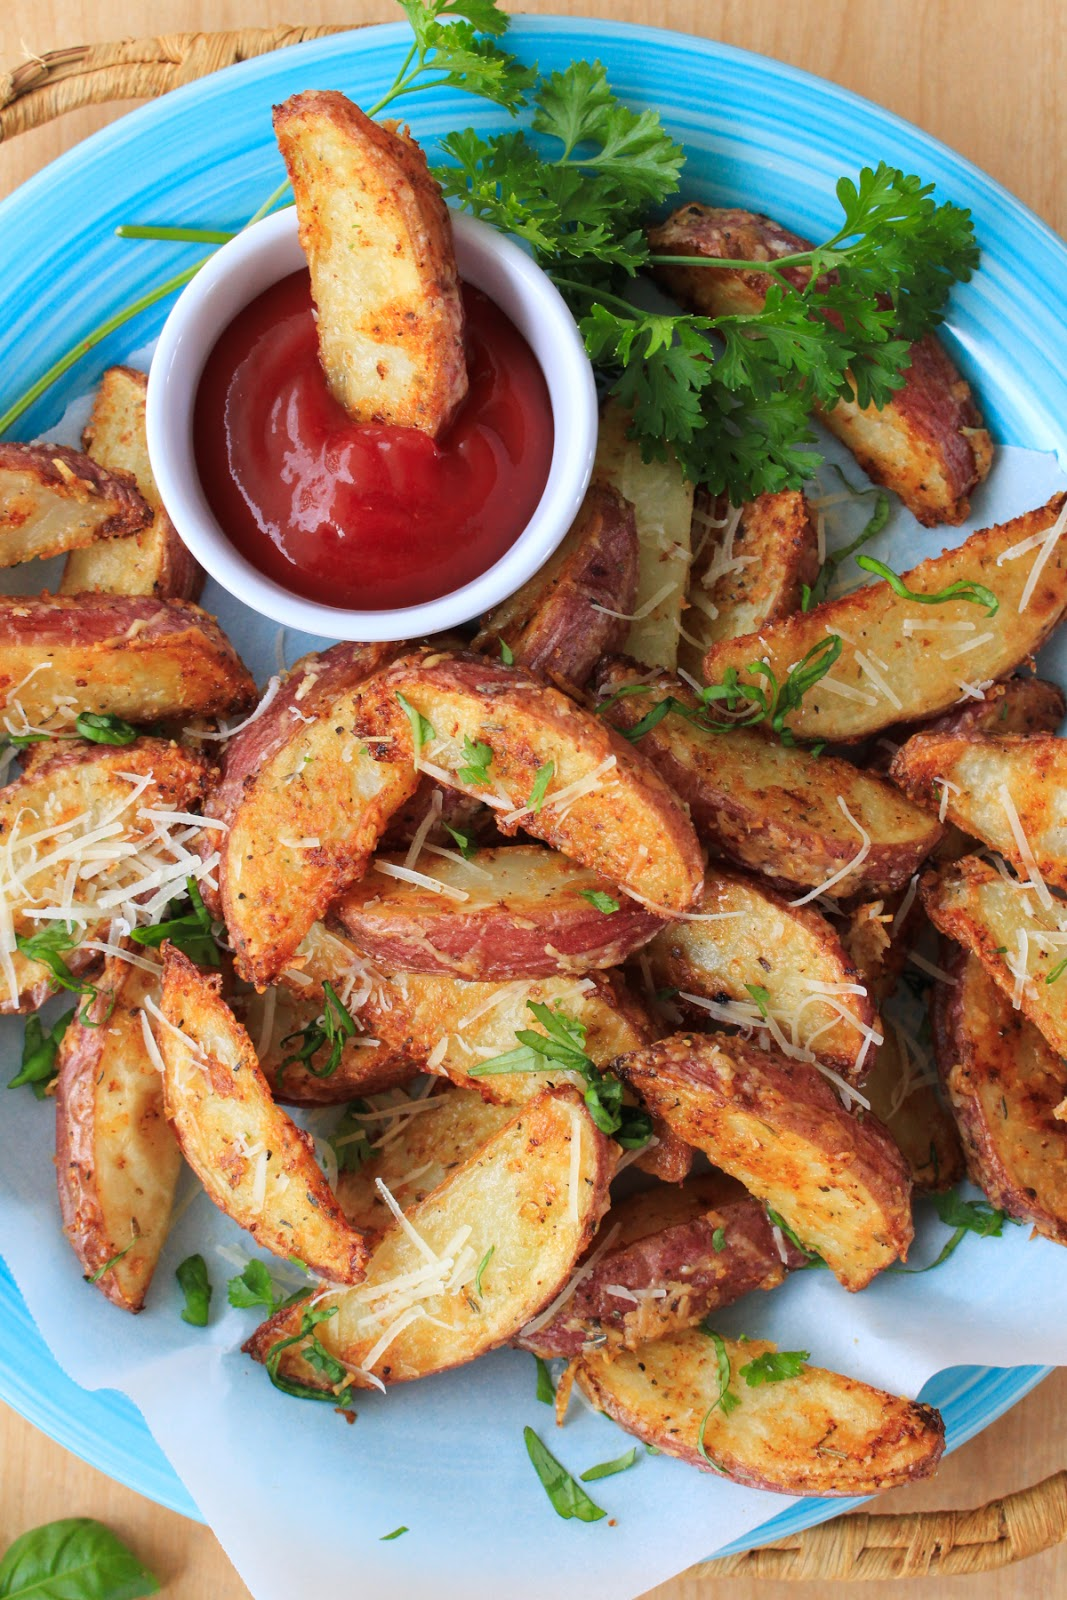 Parmesan Red Potato Wedges are coated with shredded parmesan cheese, herbs, and spices before baking in the oven until they are golden and crispy.  They are irresistible! #sidedish #potatoes